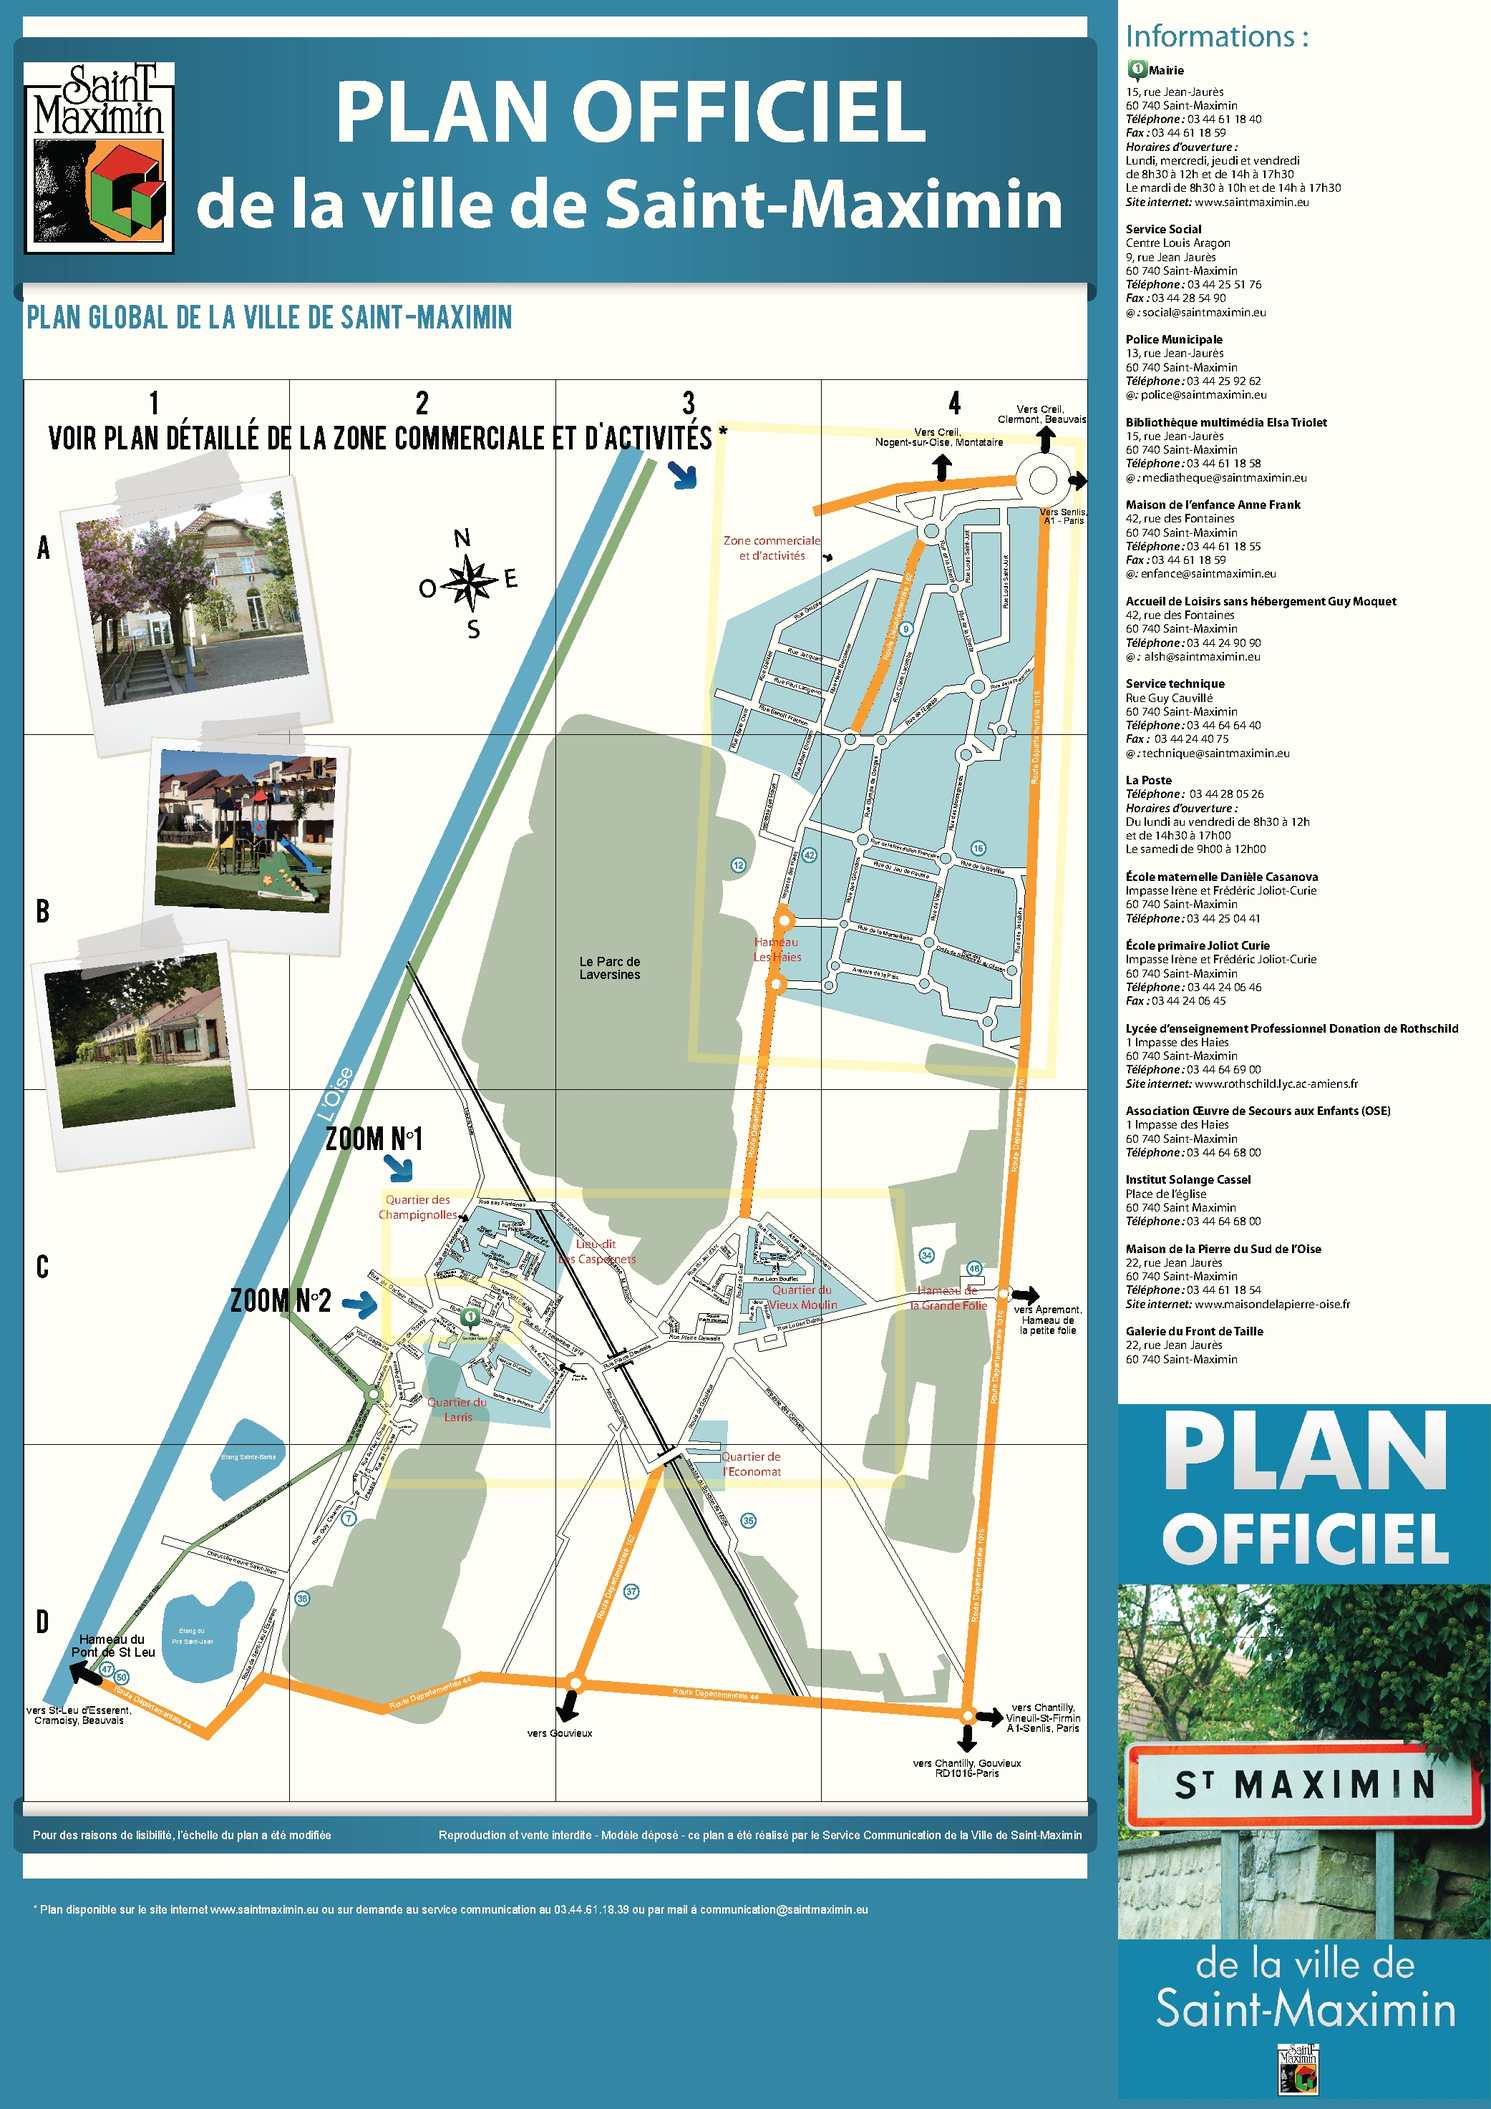 Calam o plan officiel de la ville de saint maximin for Cash piscine saint maximin